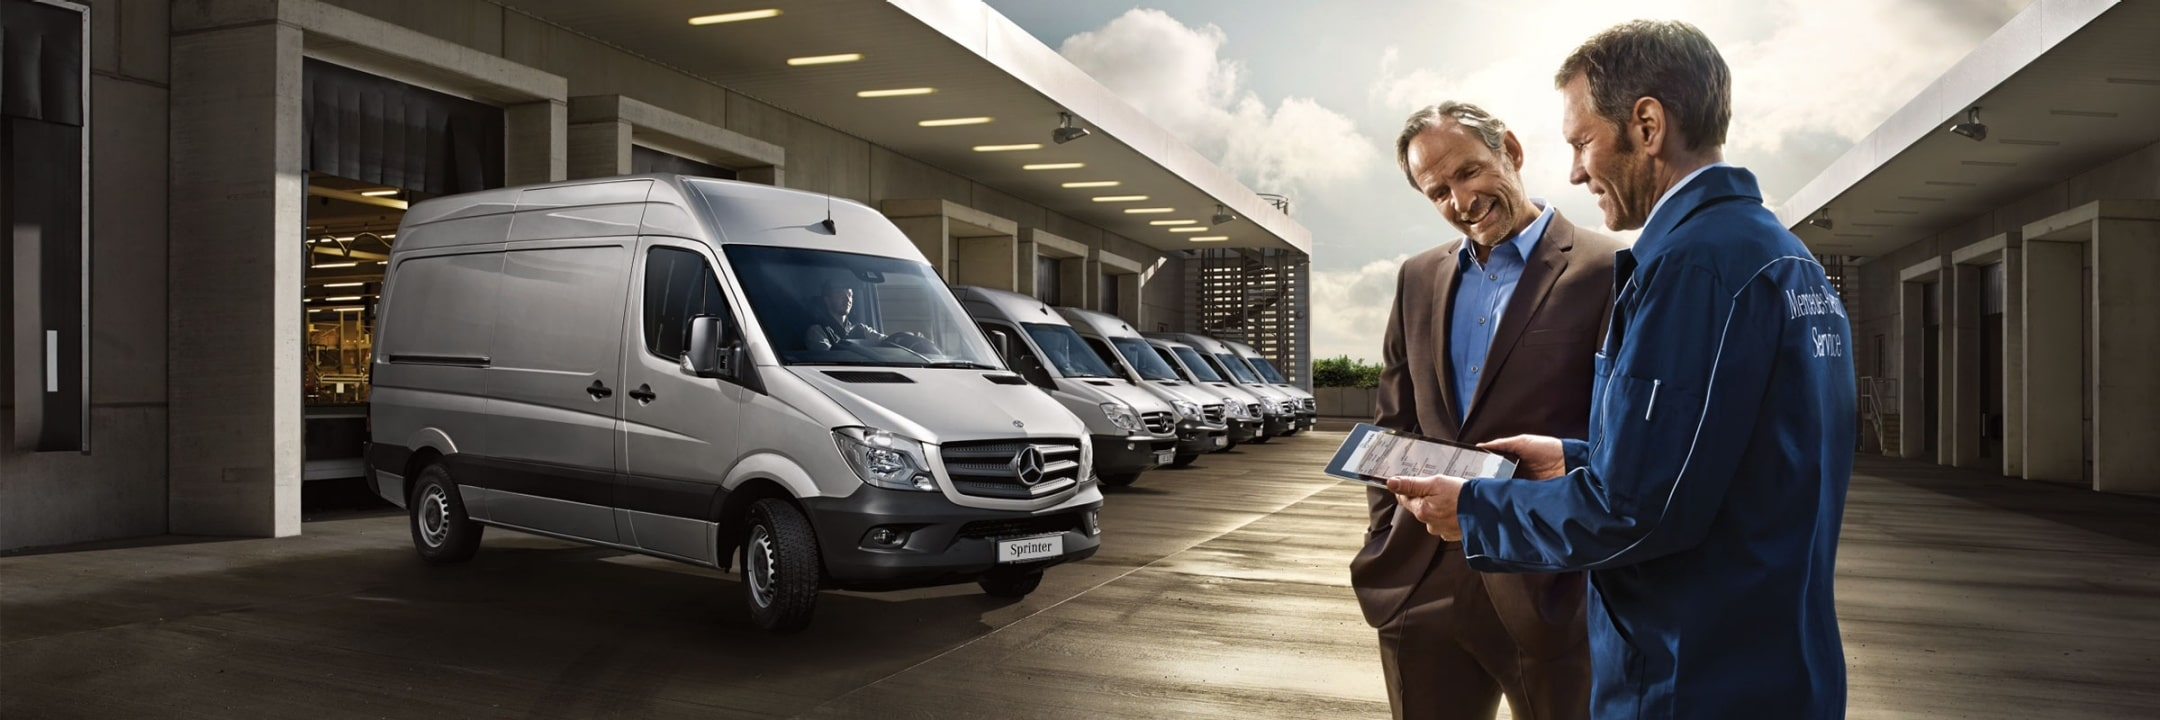 Mercedes-Benz contact for customer solutions